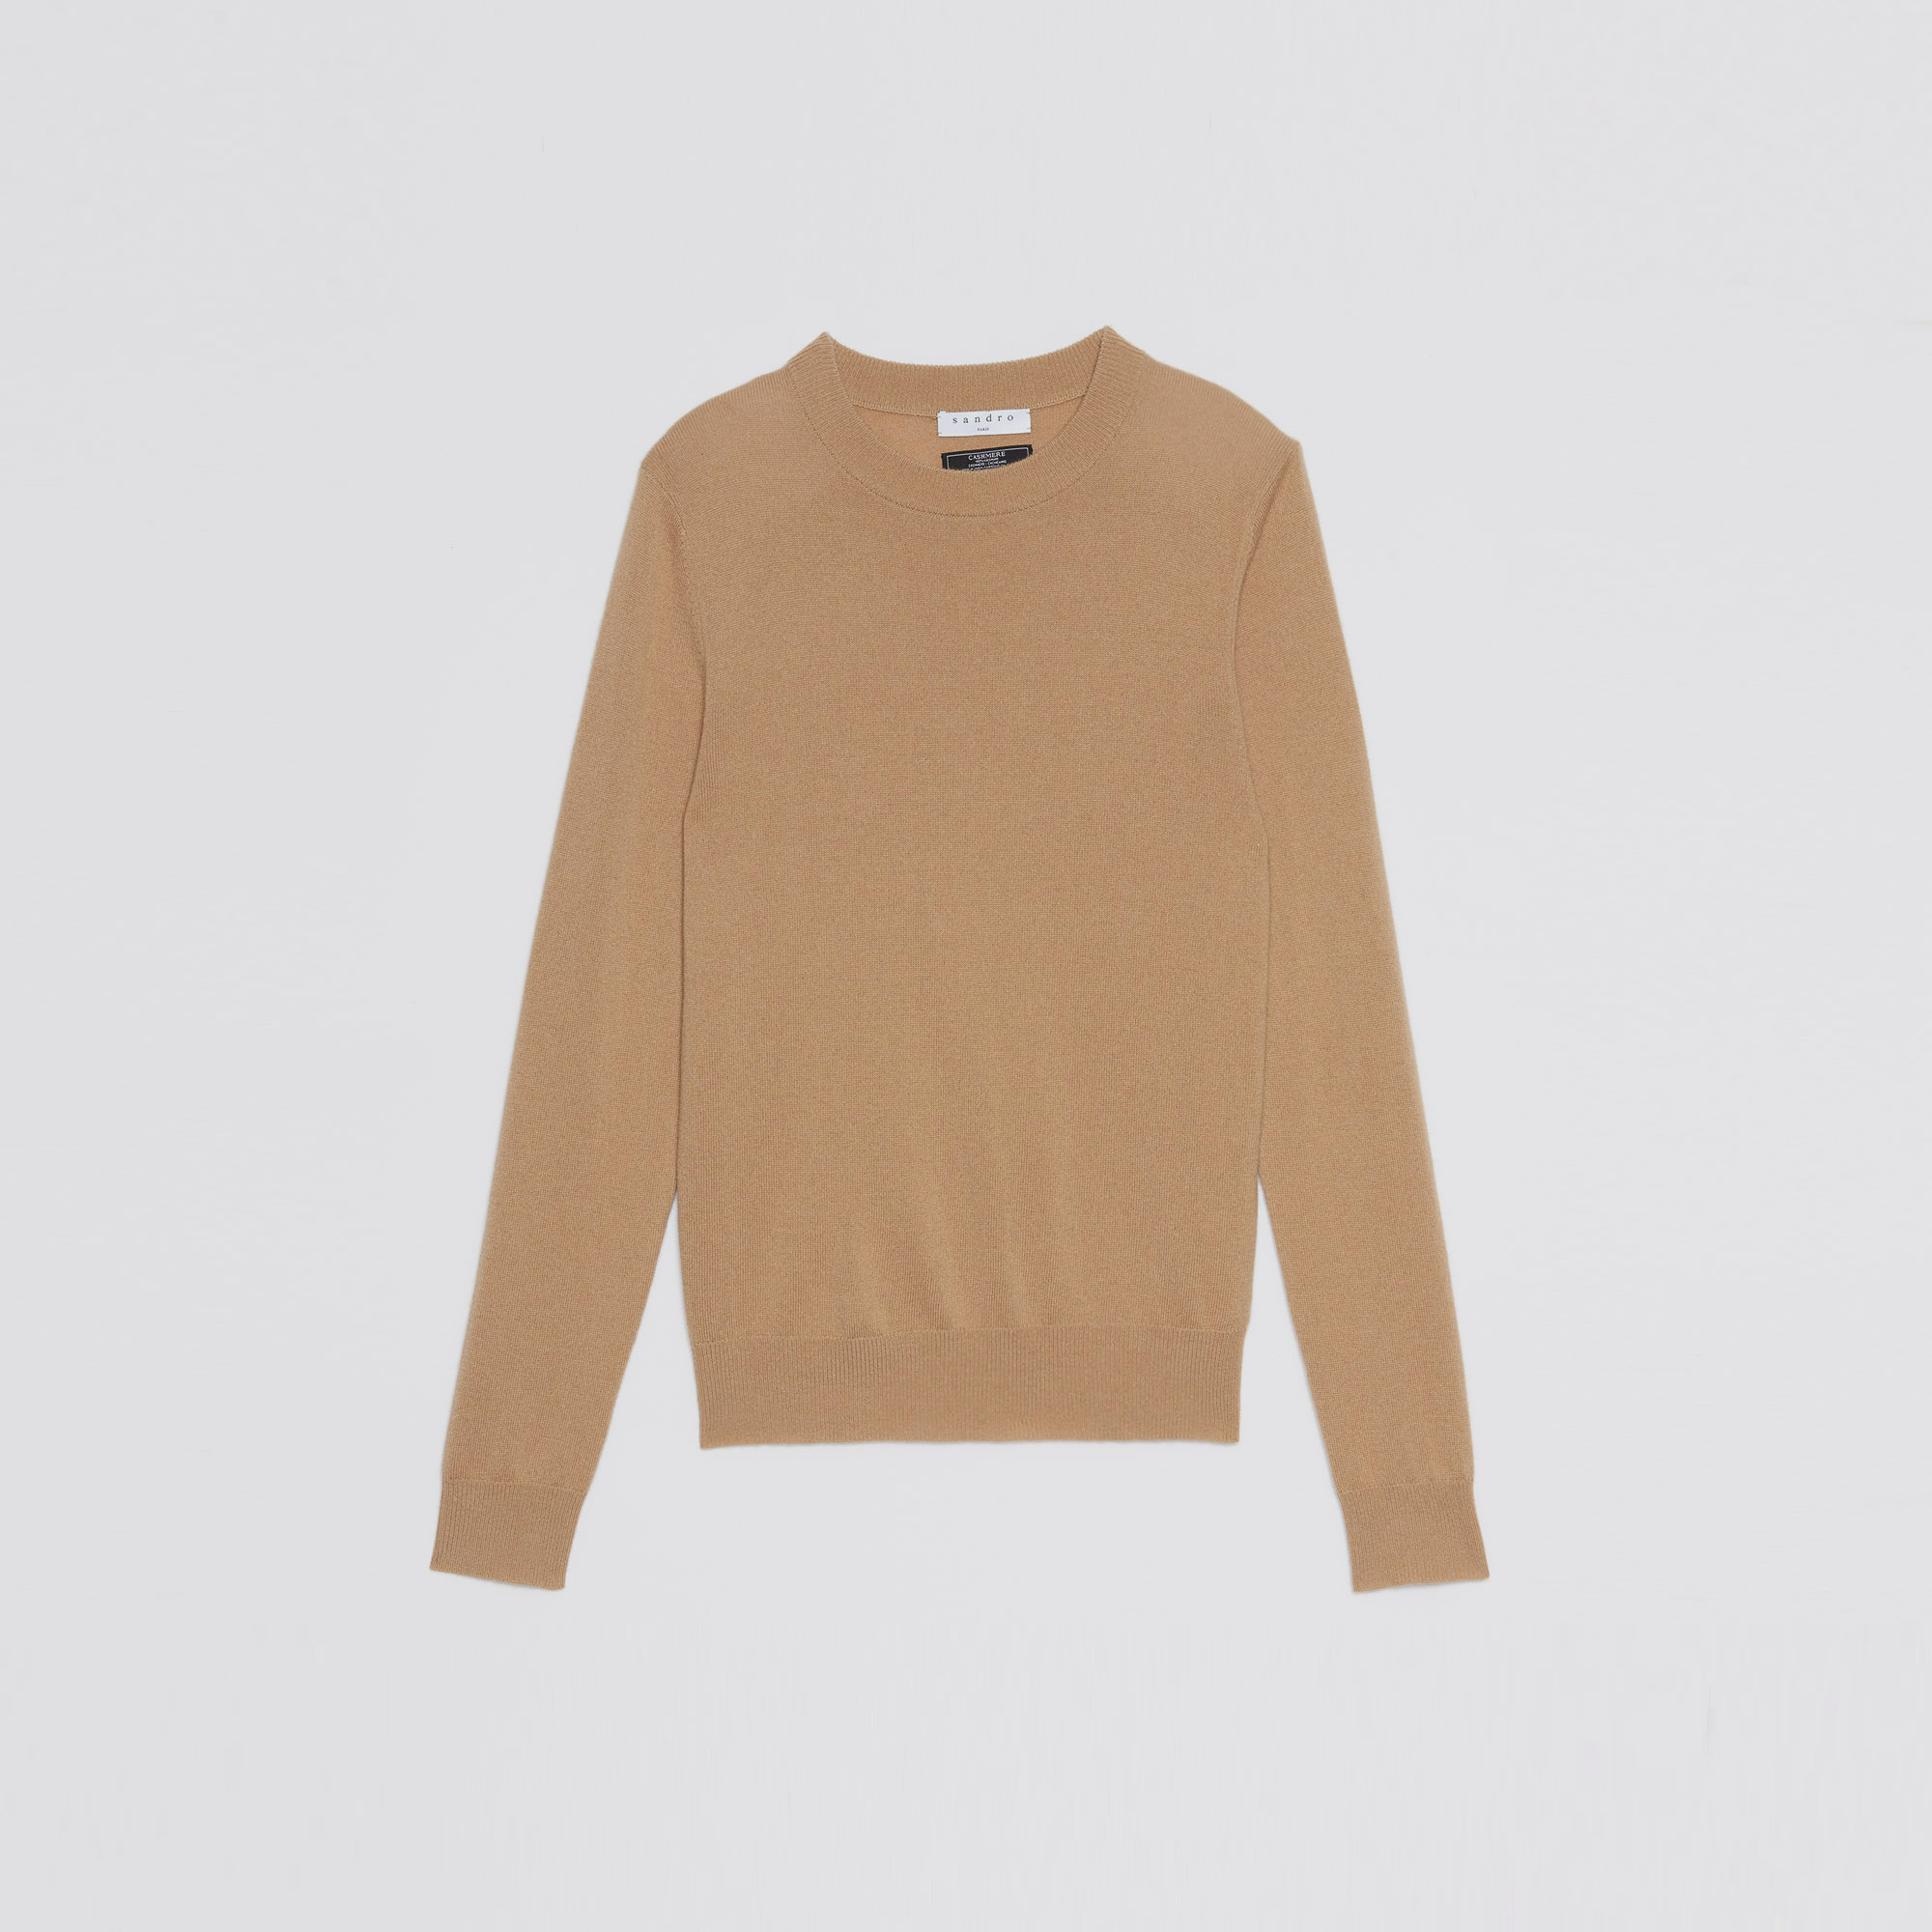 Plain sweater in cashmere - Sweaters & Cardigans - Sandro-paris.com